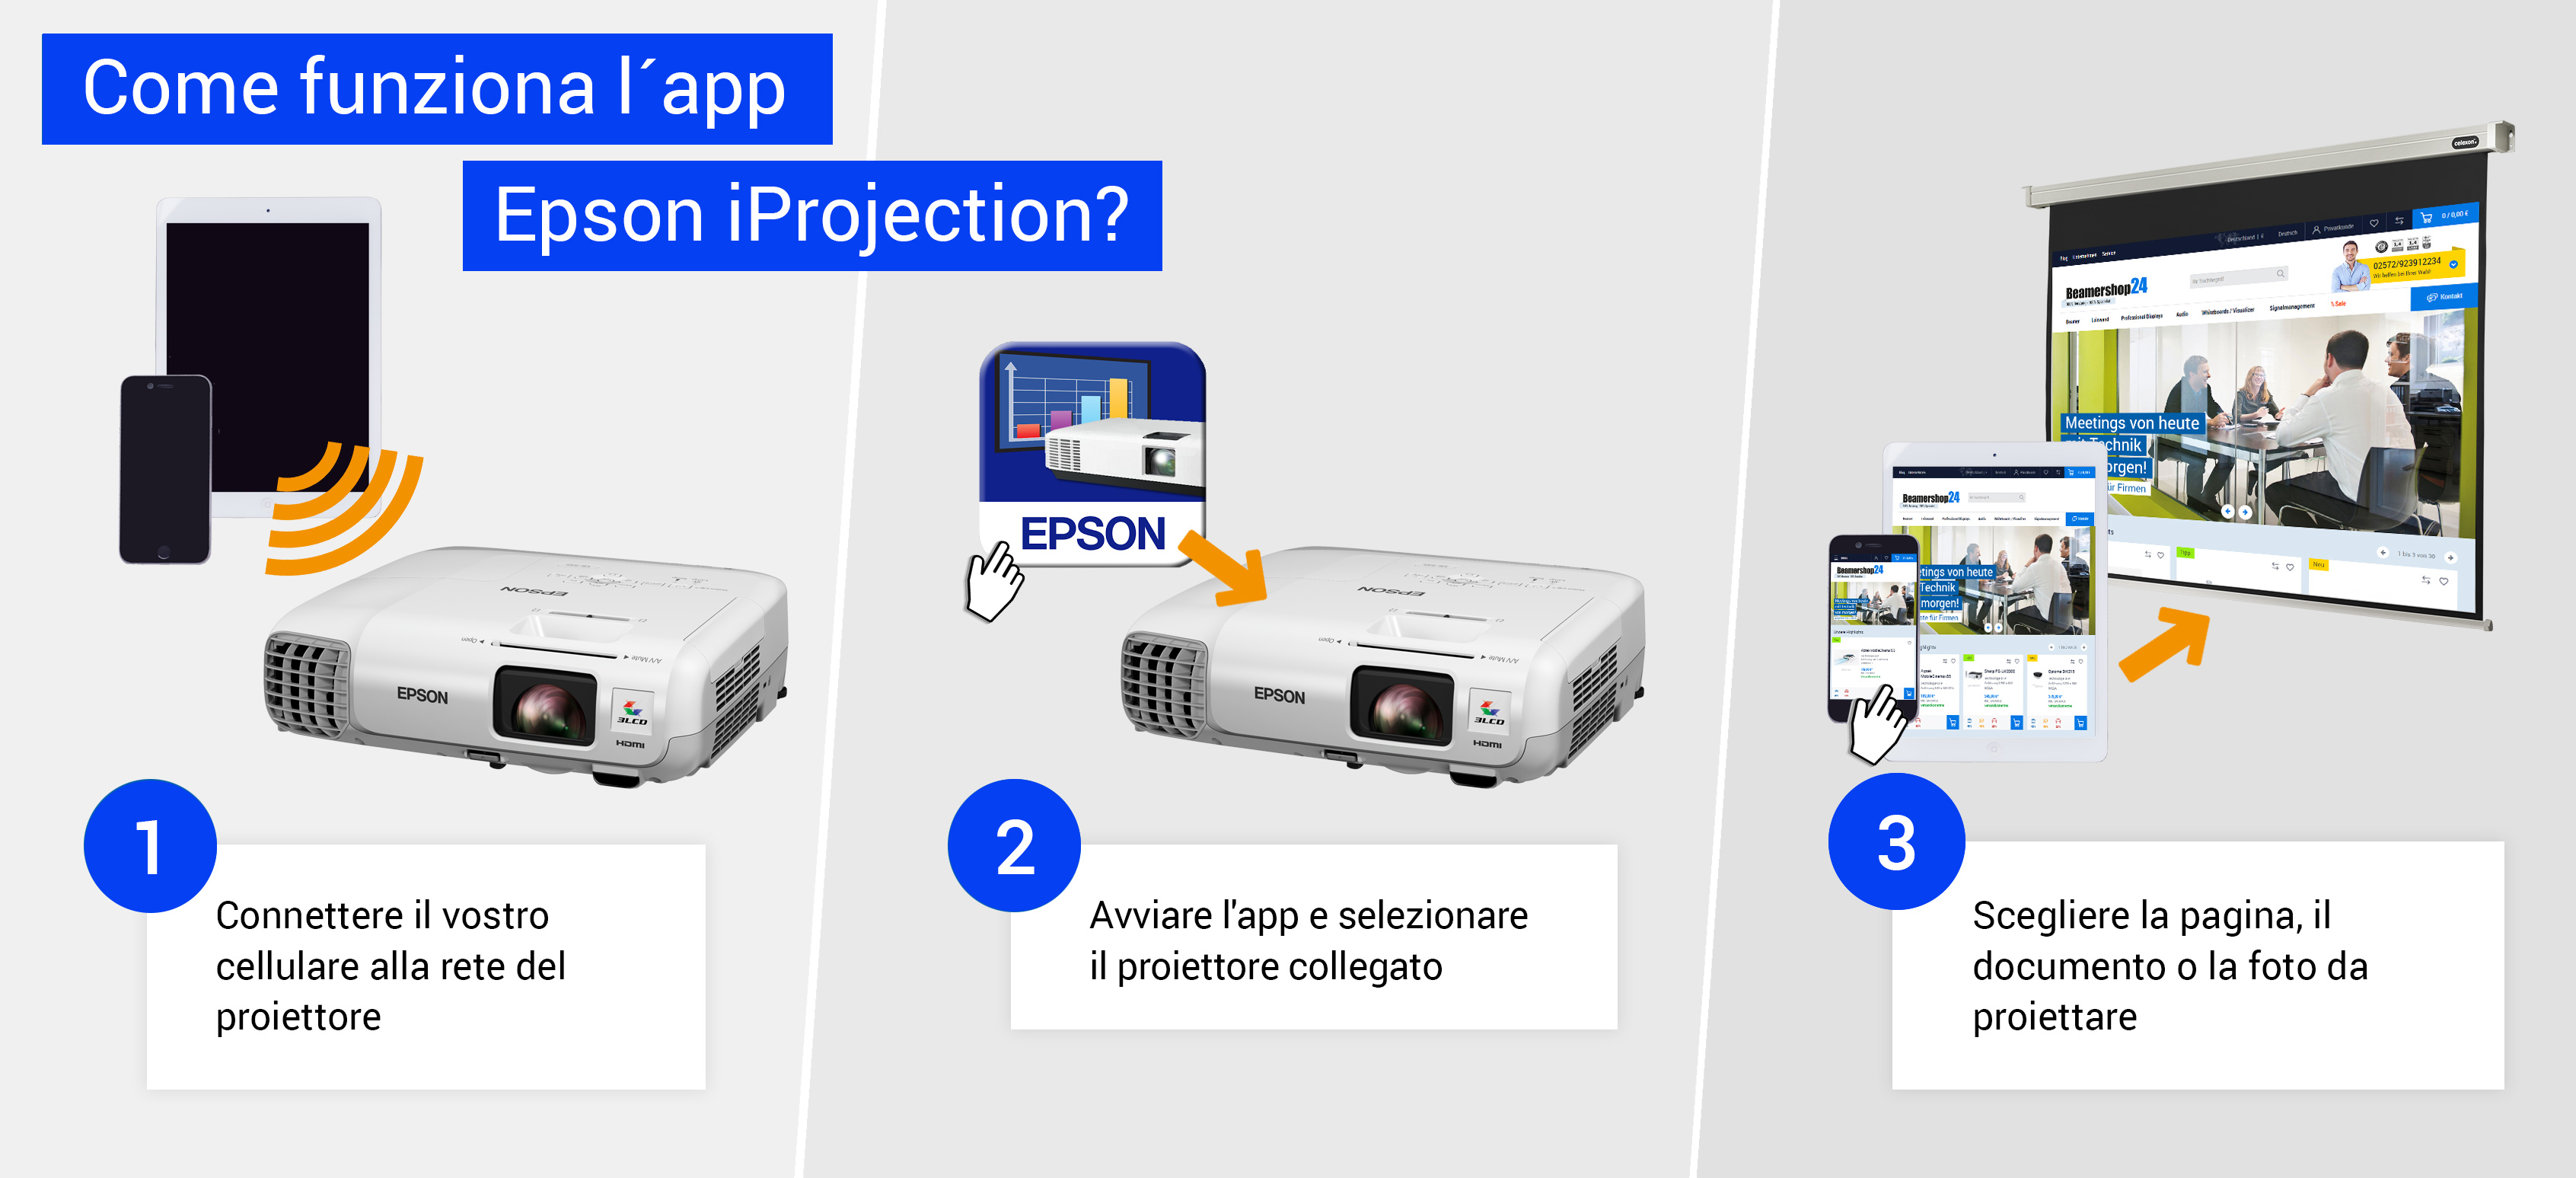 Come funziona l'app Epson iProjection?